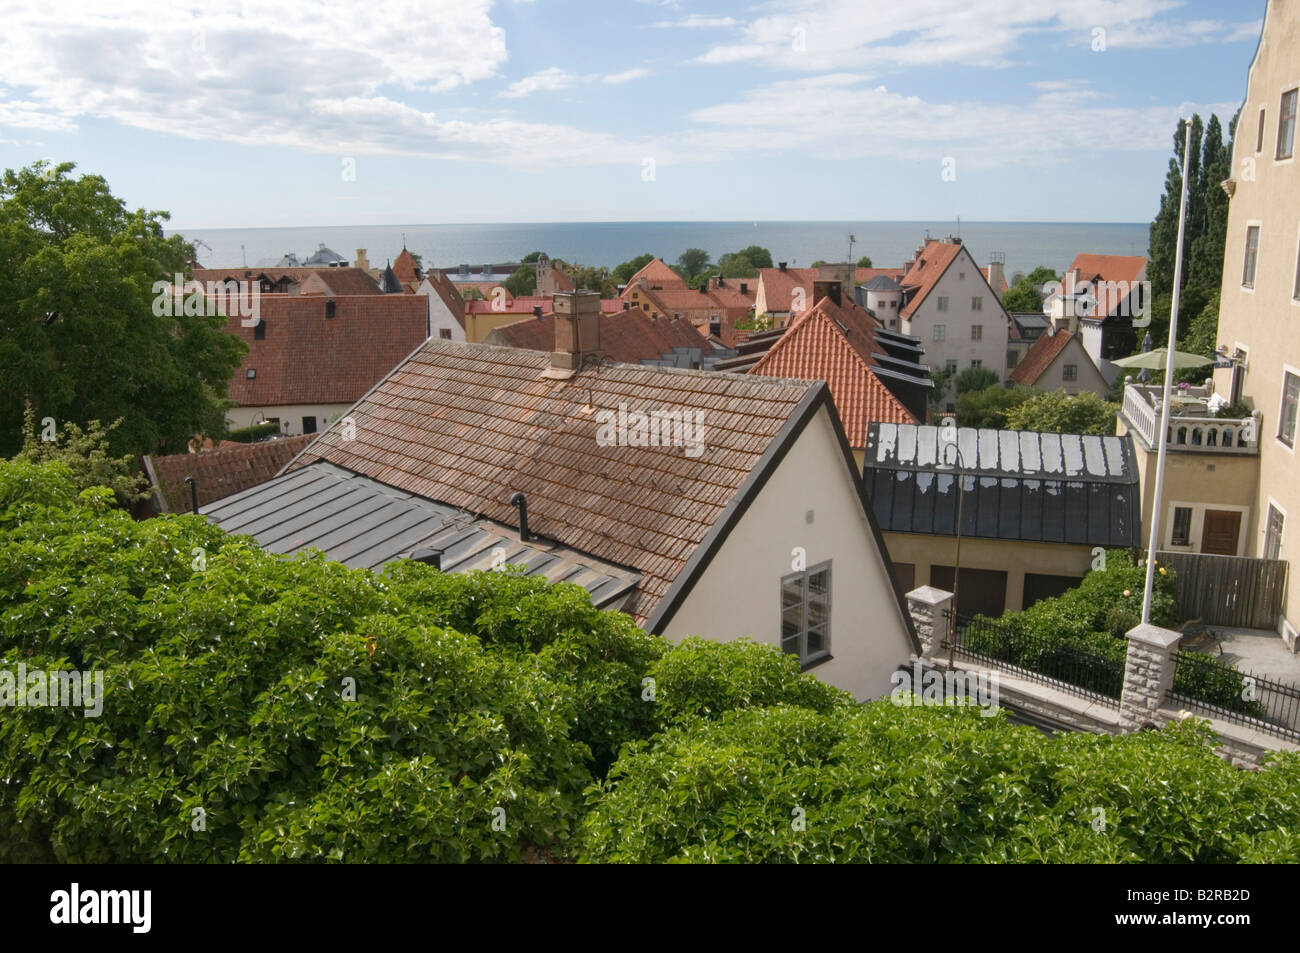 traditional swedish houses on gotland island - Stock Image